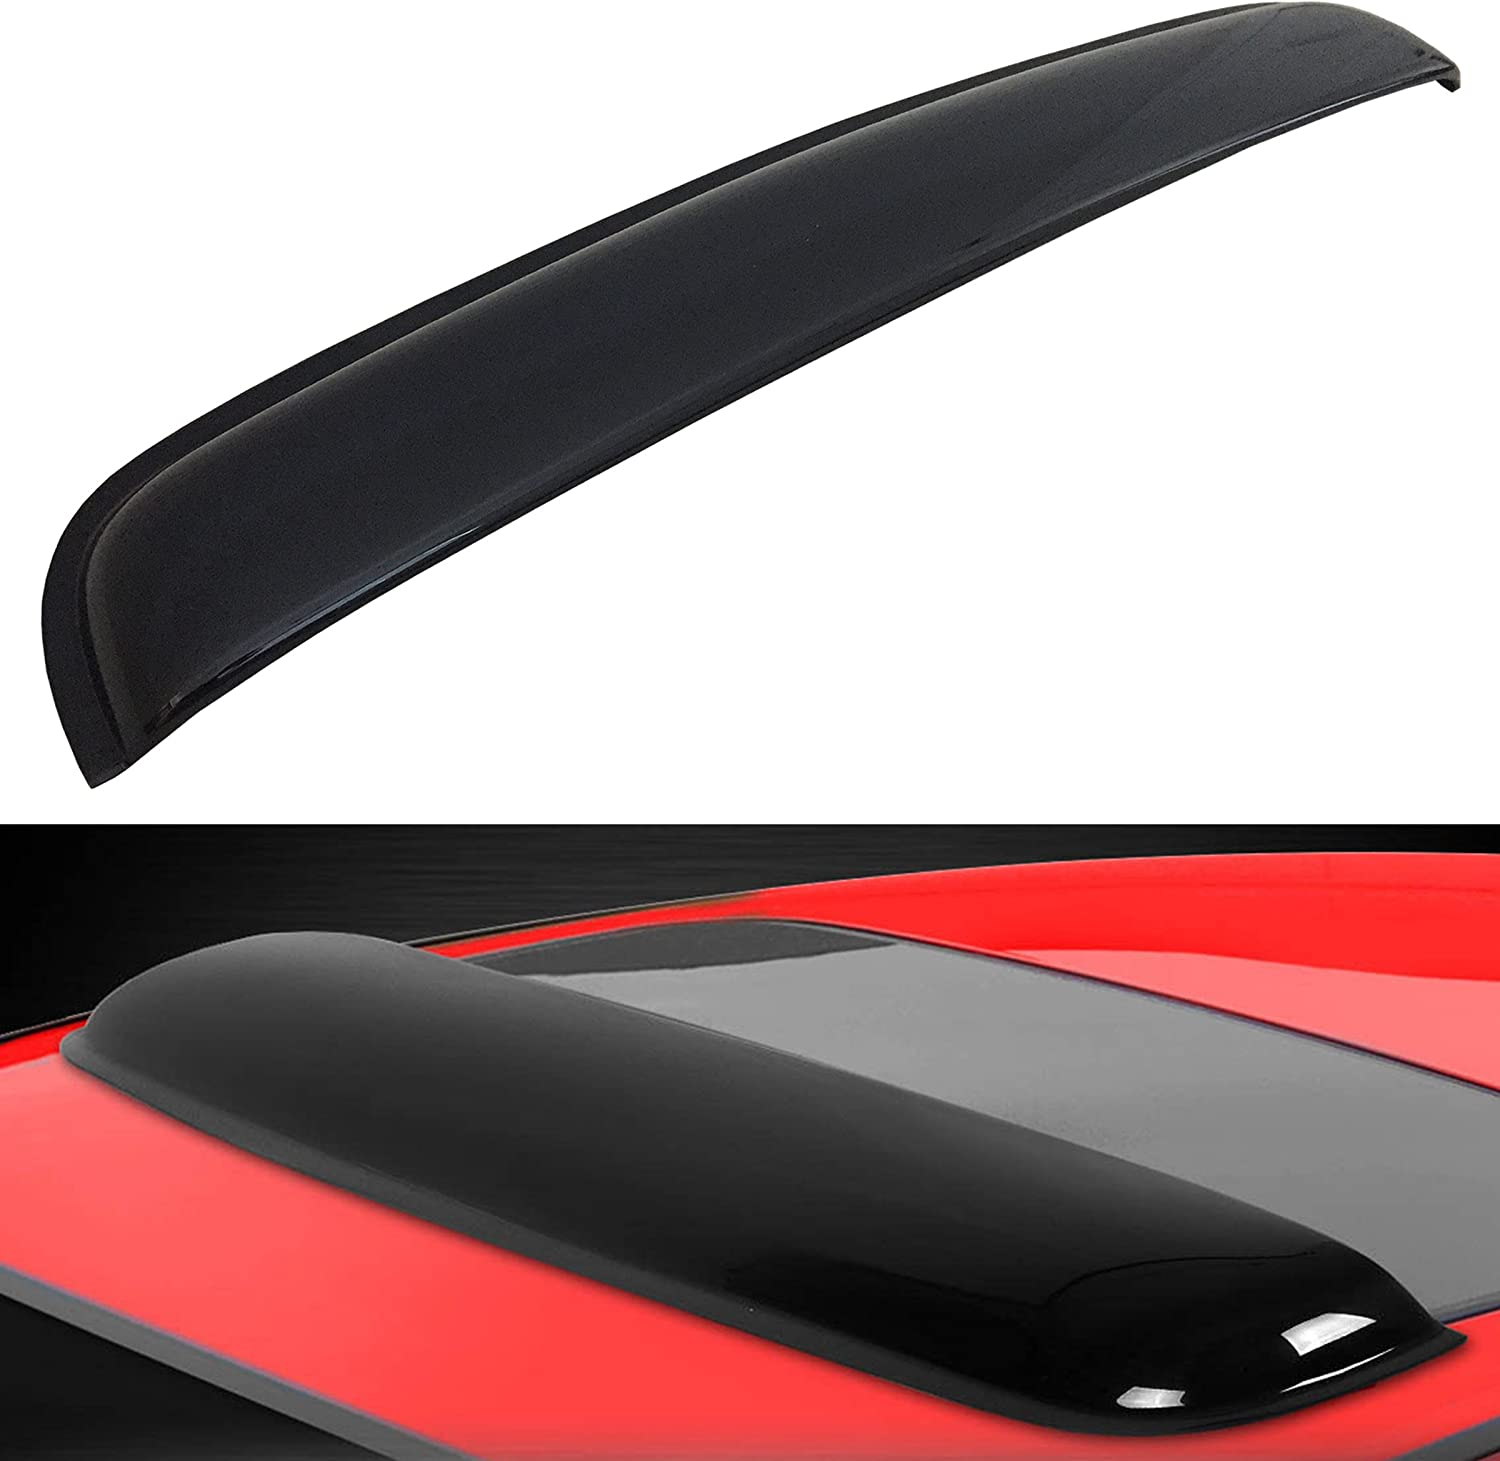 "Mega Racer 980MM / 38"" JDM Style Black Universal Fit Sunroof Wind Deflector Roof Spoiler Moon Roof Visor Sunroof Visor Sunroof Deflector Sunroof Wind Deflectors Moonroof Visor Waterproof Tape Smoke"